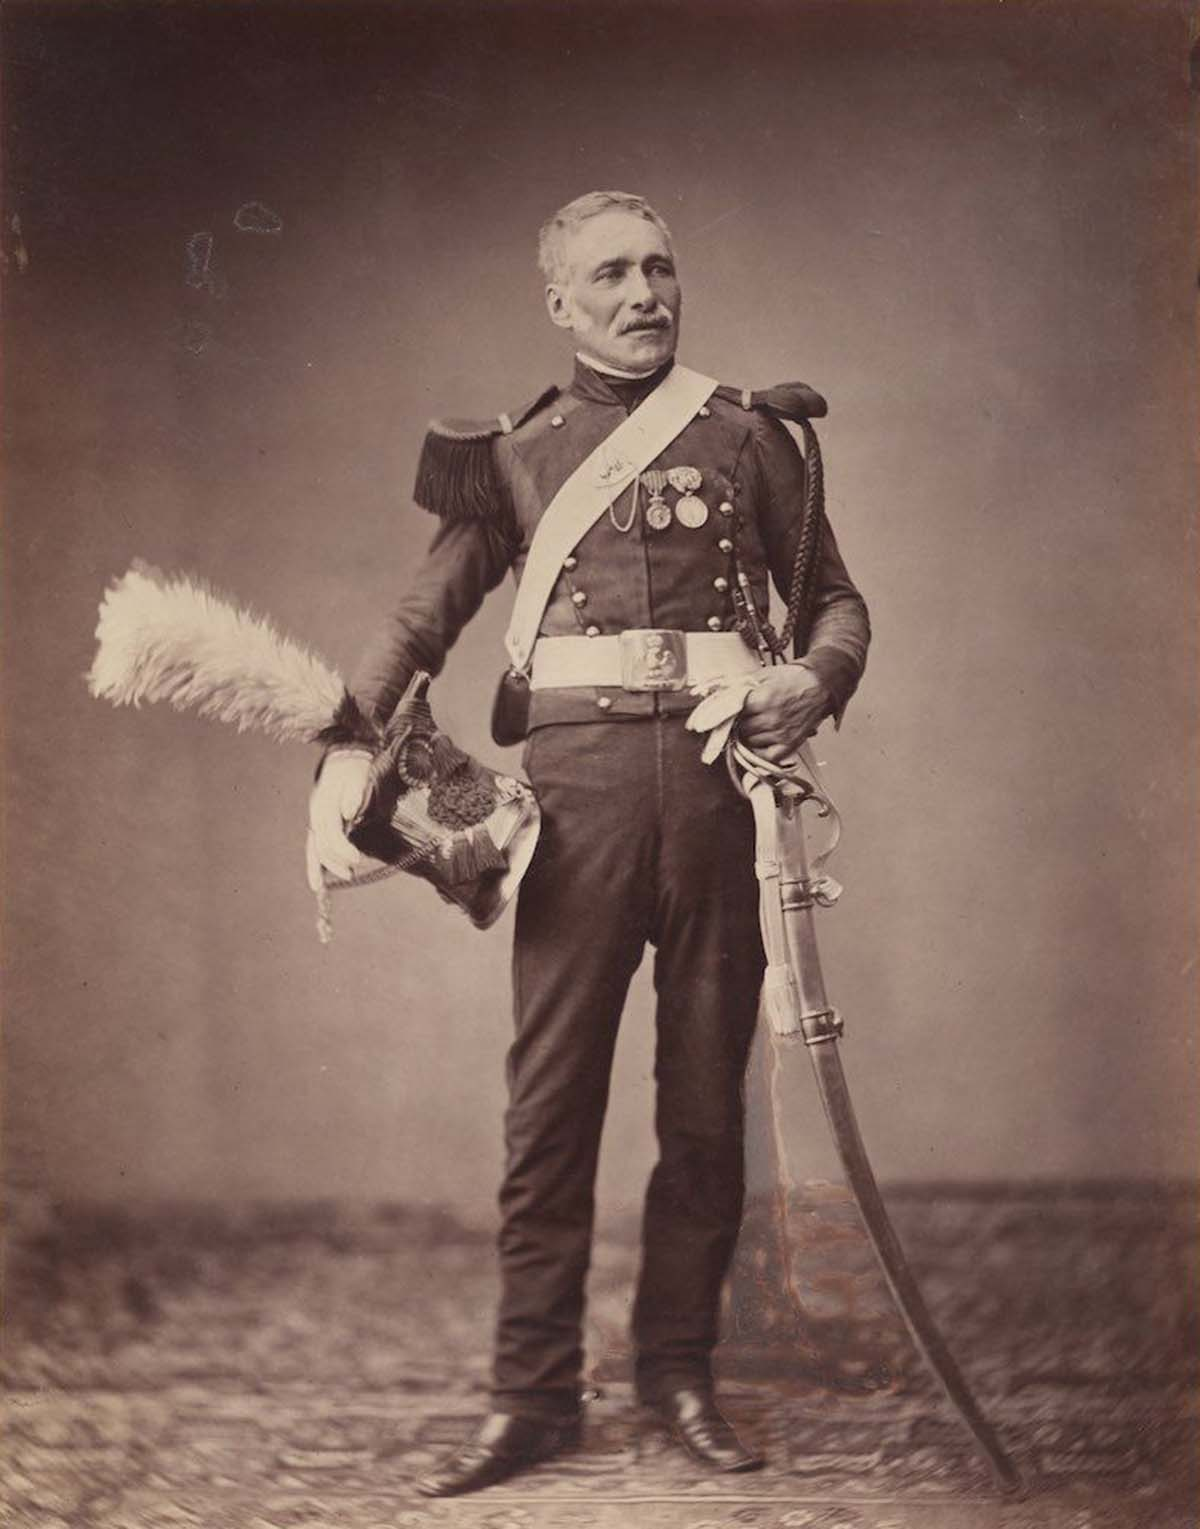 Monsiuer Dreuse of the 2nd Light Horse Lancers of the Guard.